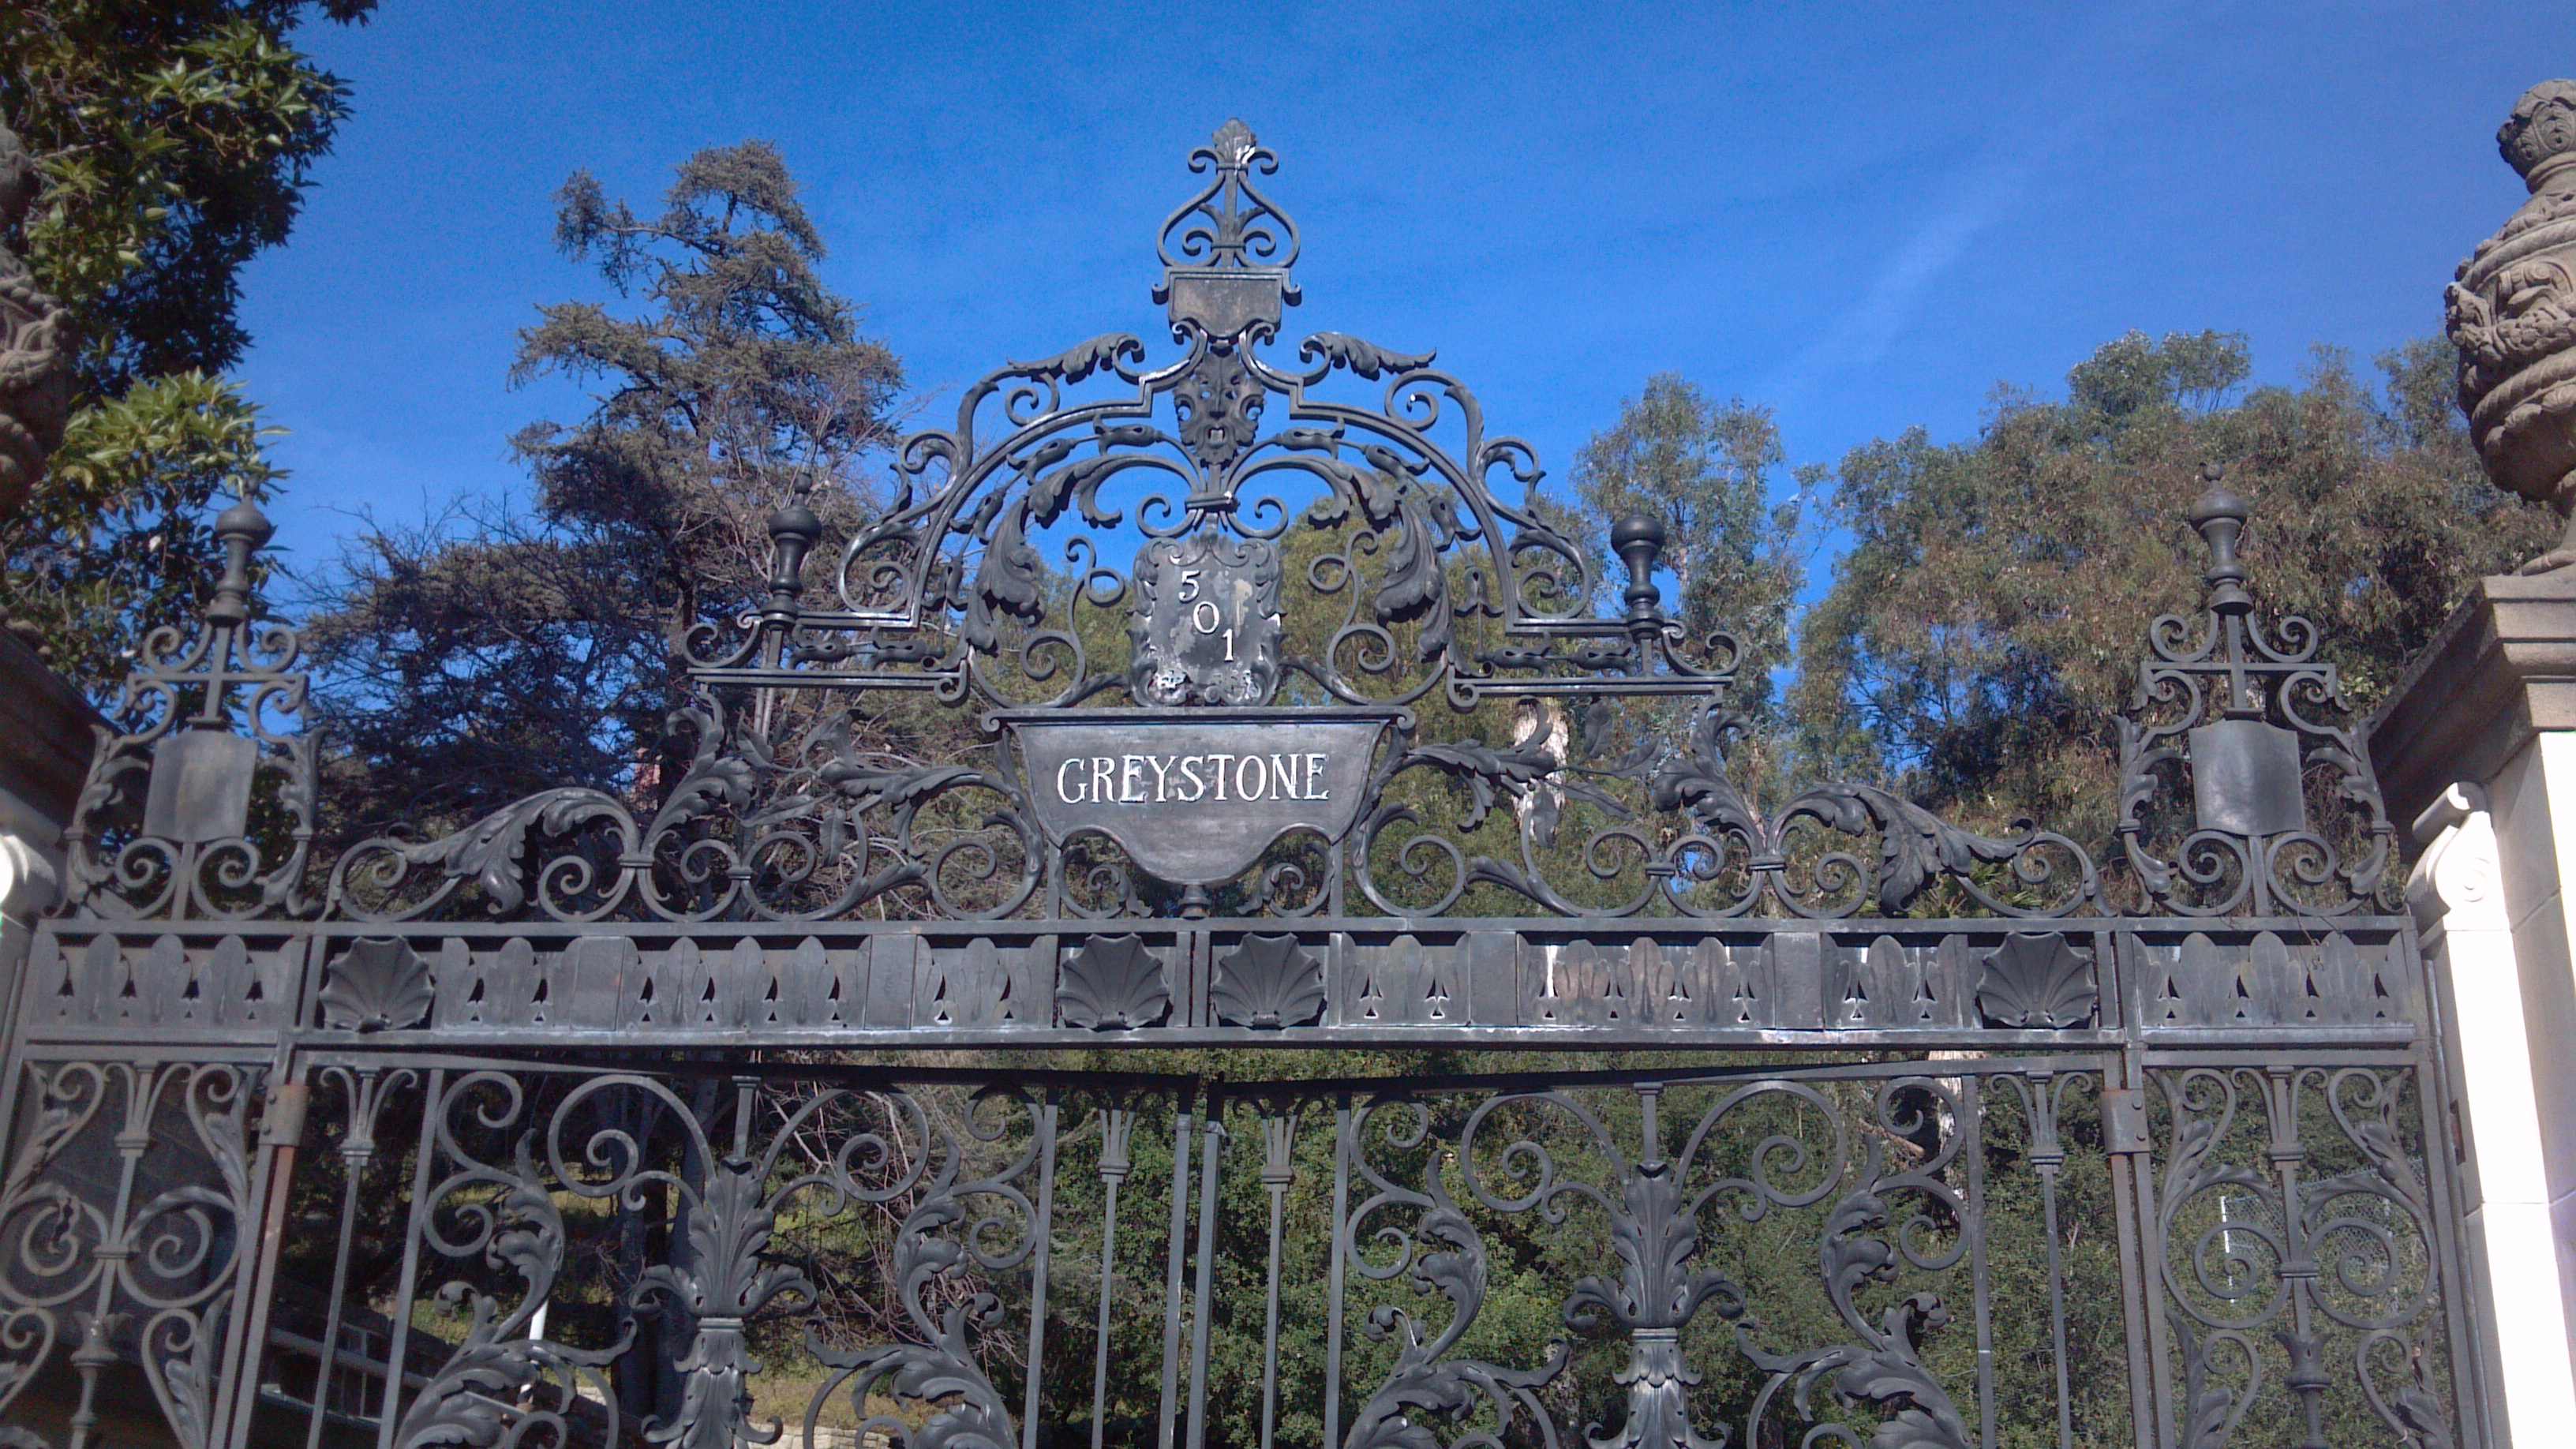 Beverly hills bar foundation event at greystone mansion for The greystone